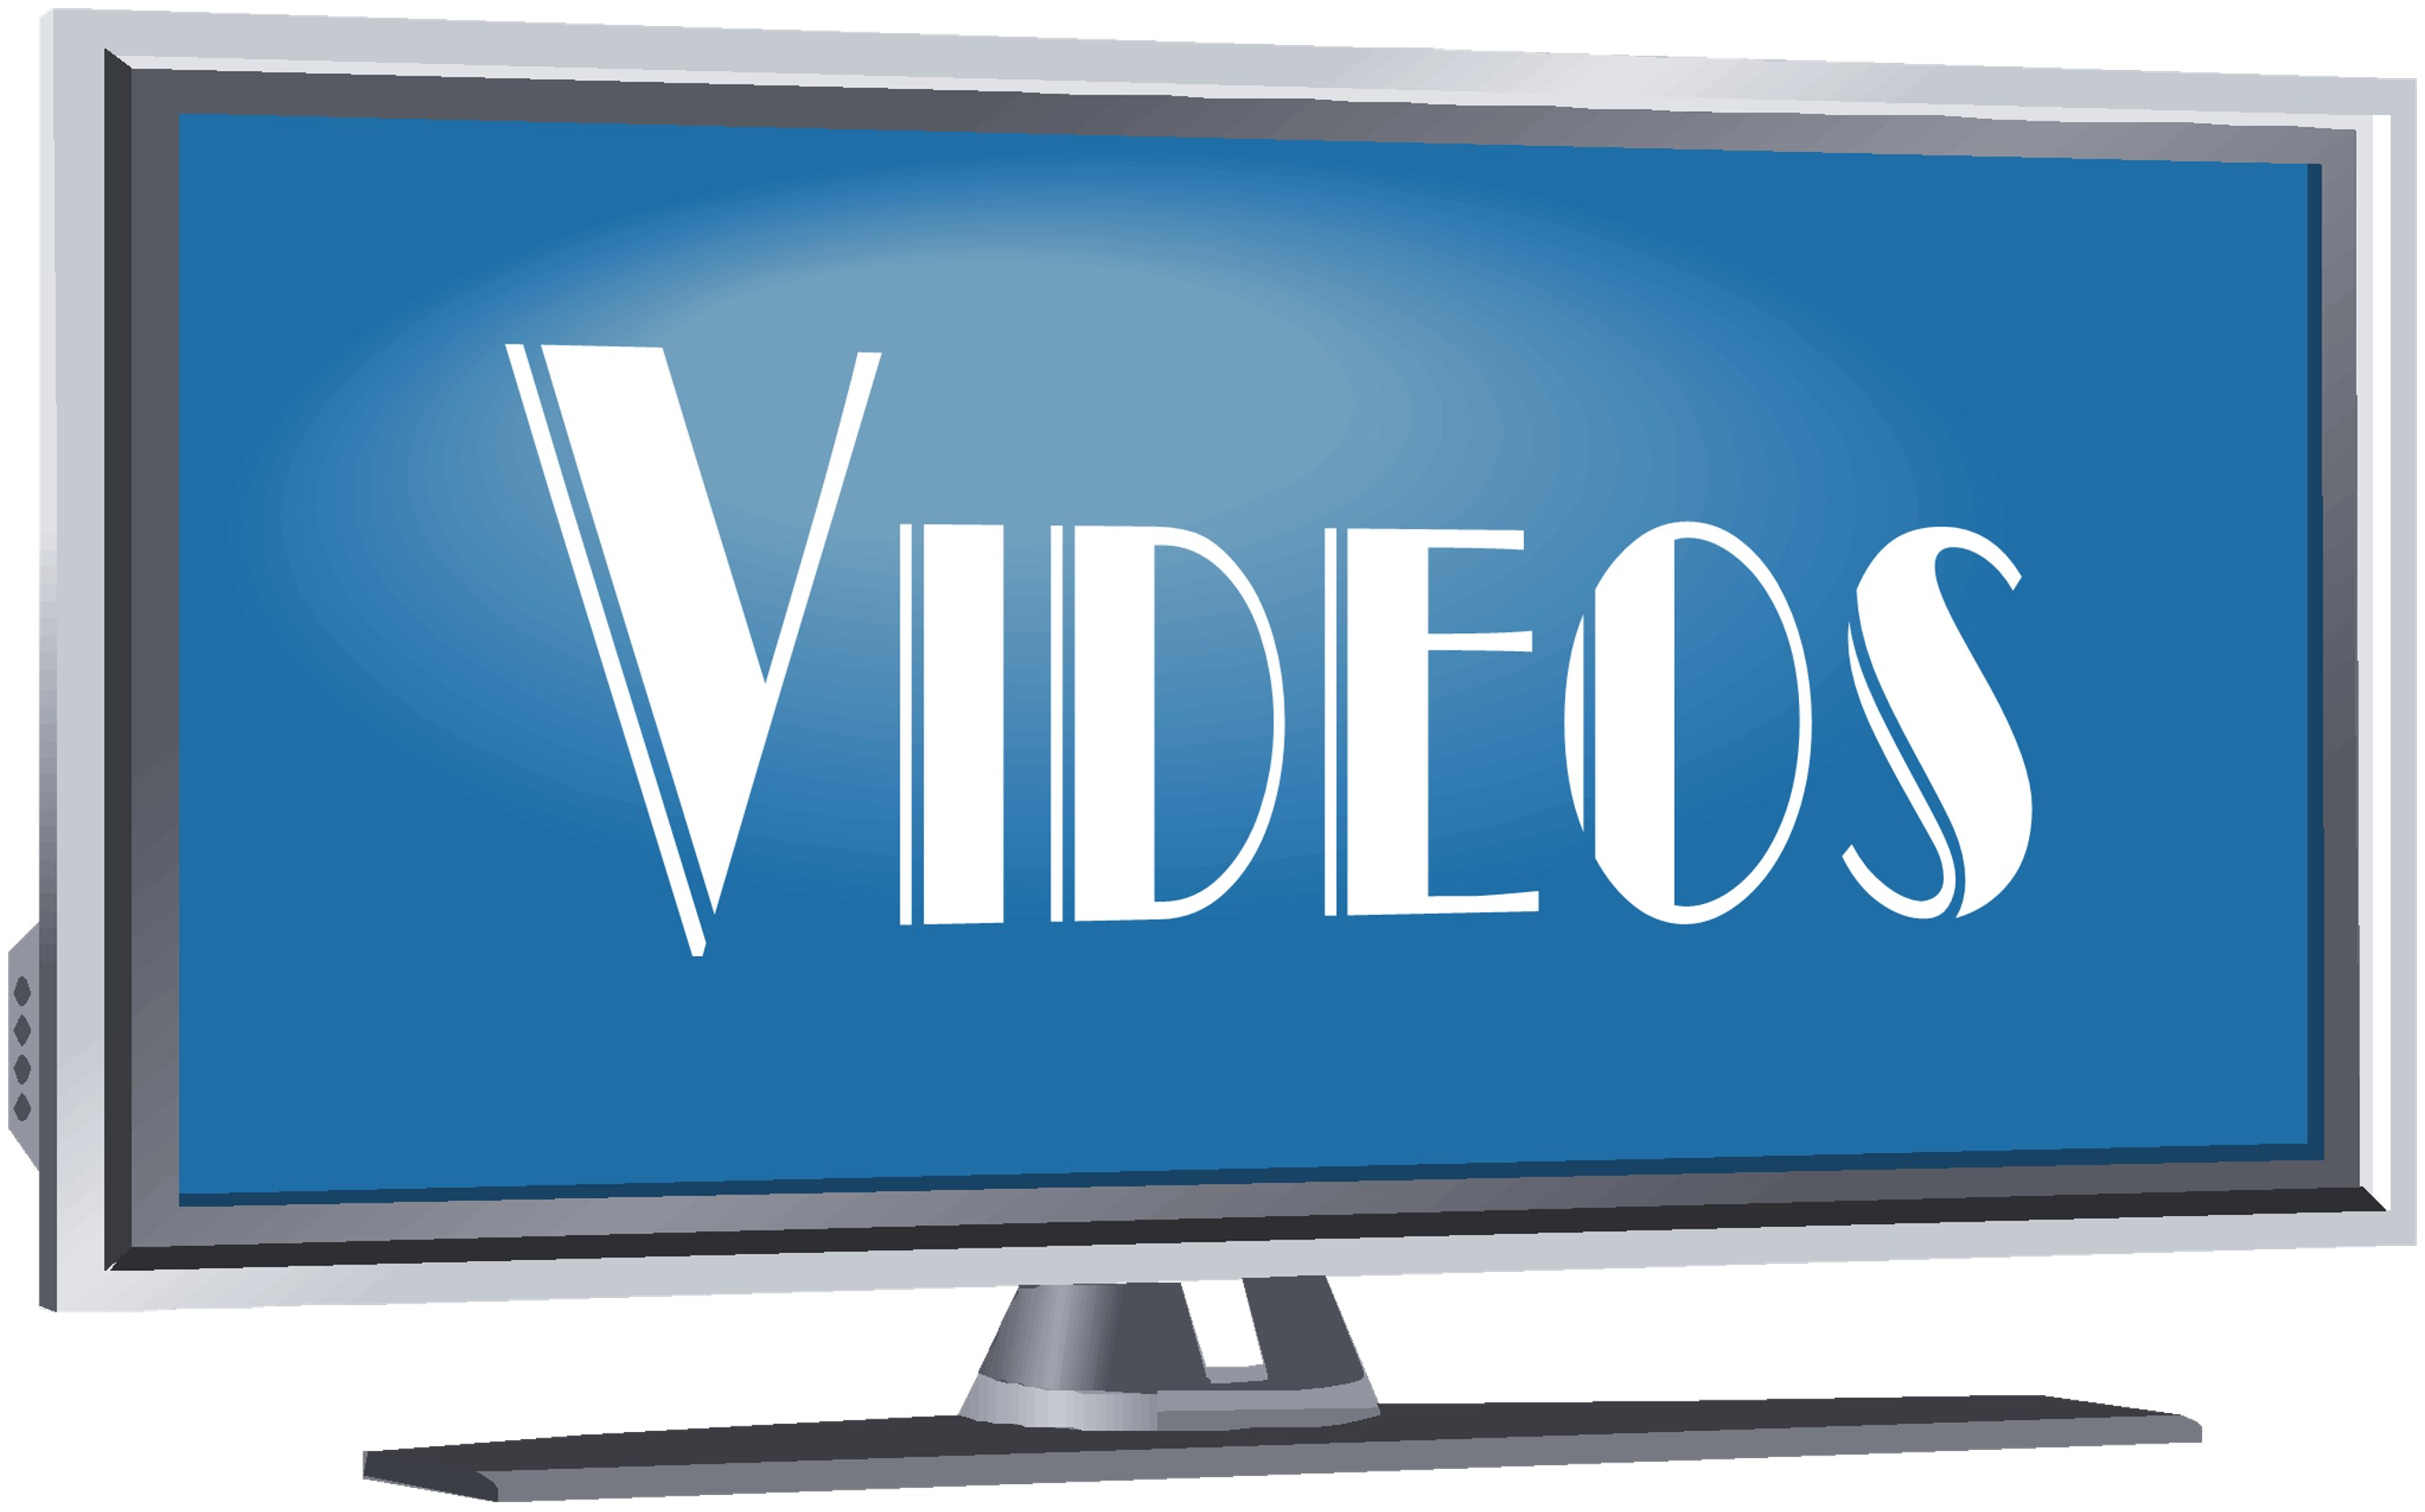 Educational Technology Guy Download Youtube Videos (and